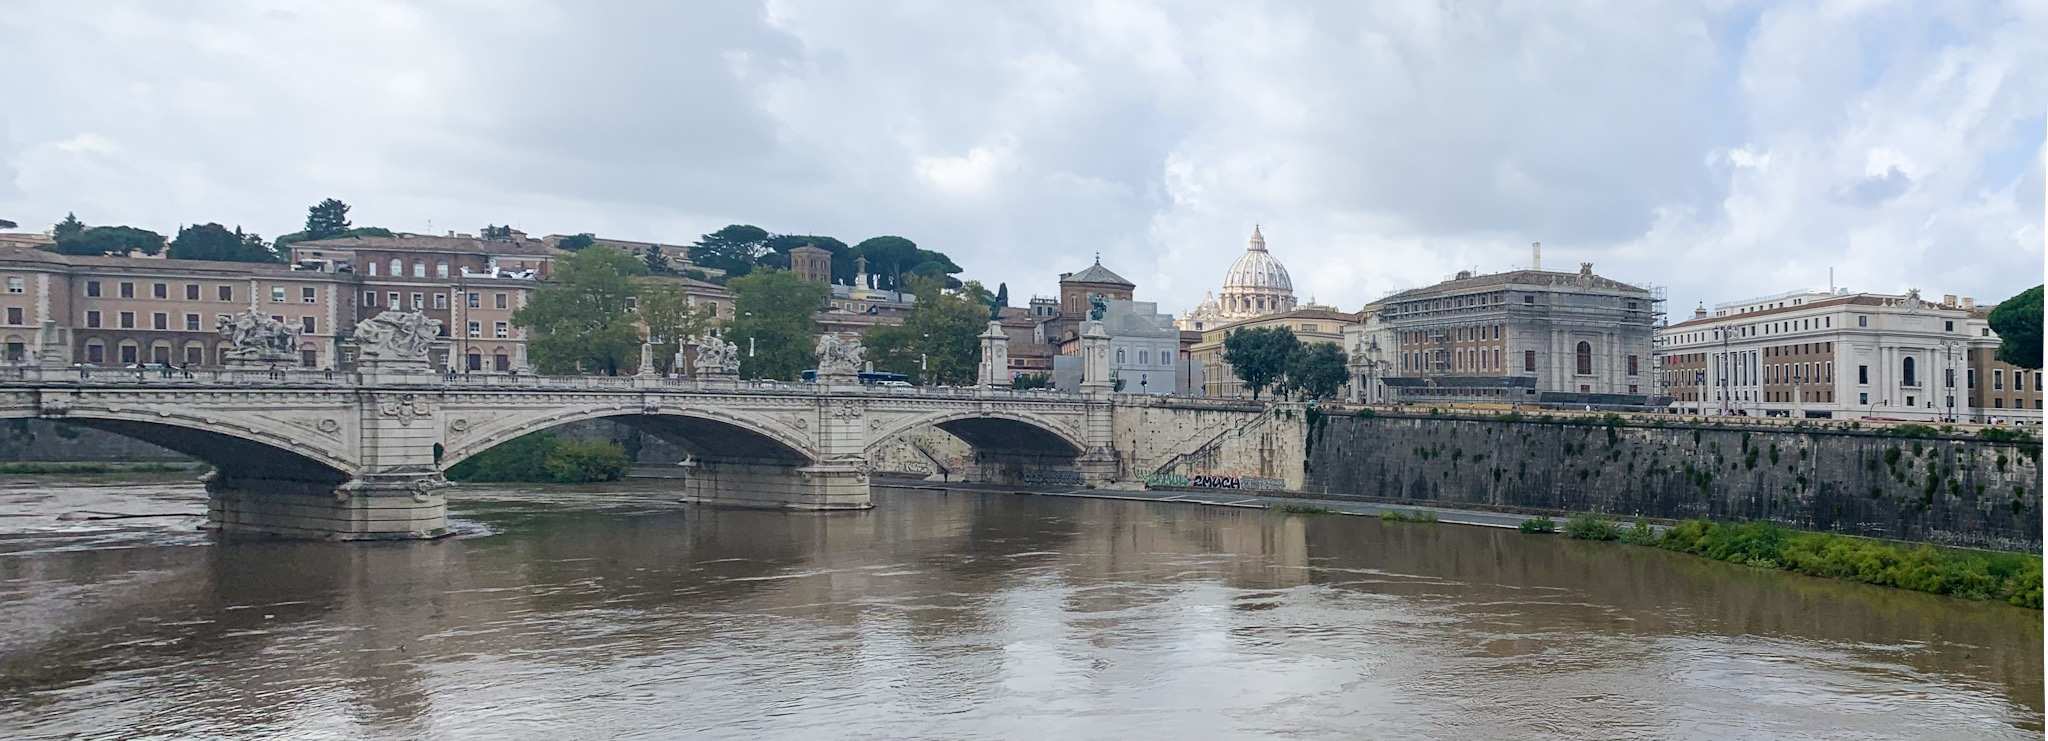 Rome, and a distant view of the dome of St. Peter's Basilica.